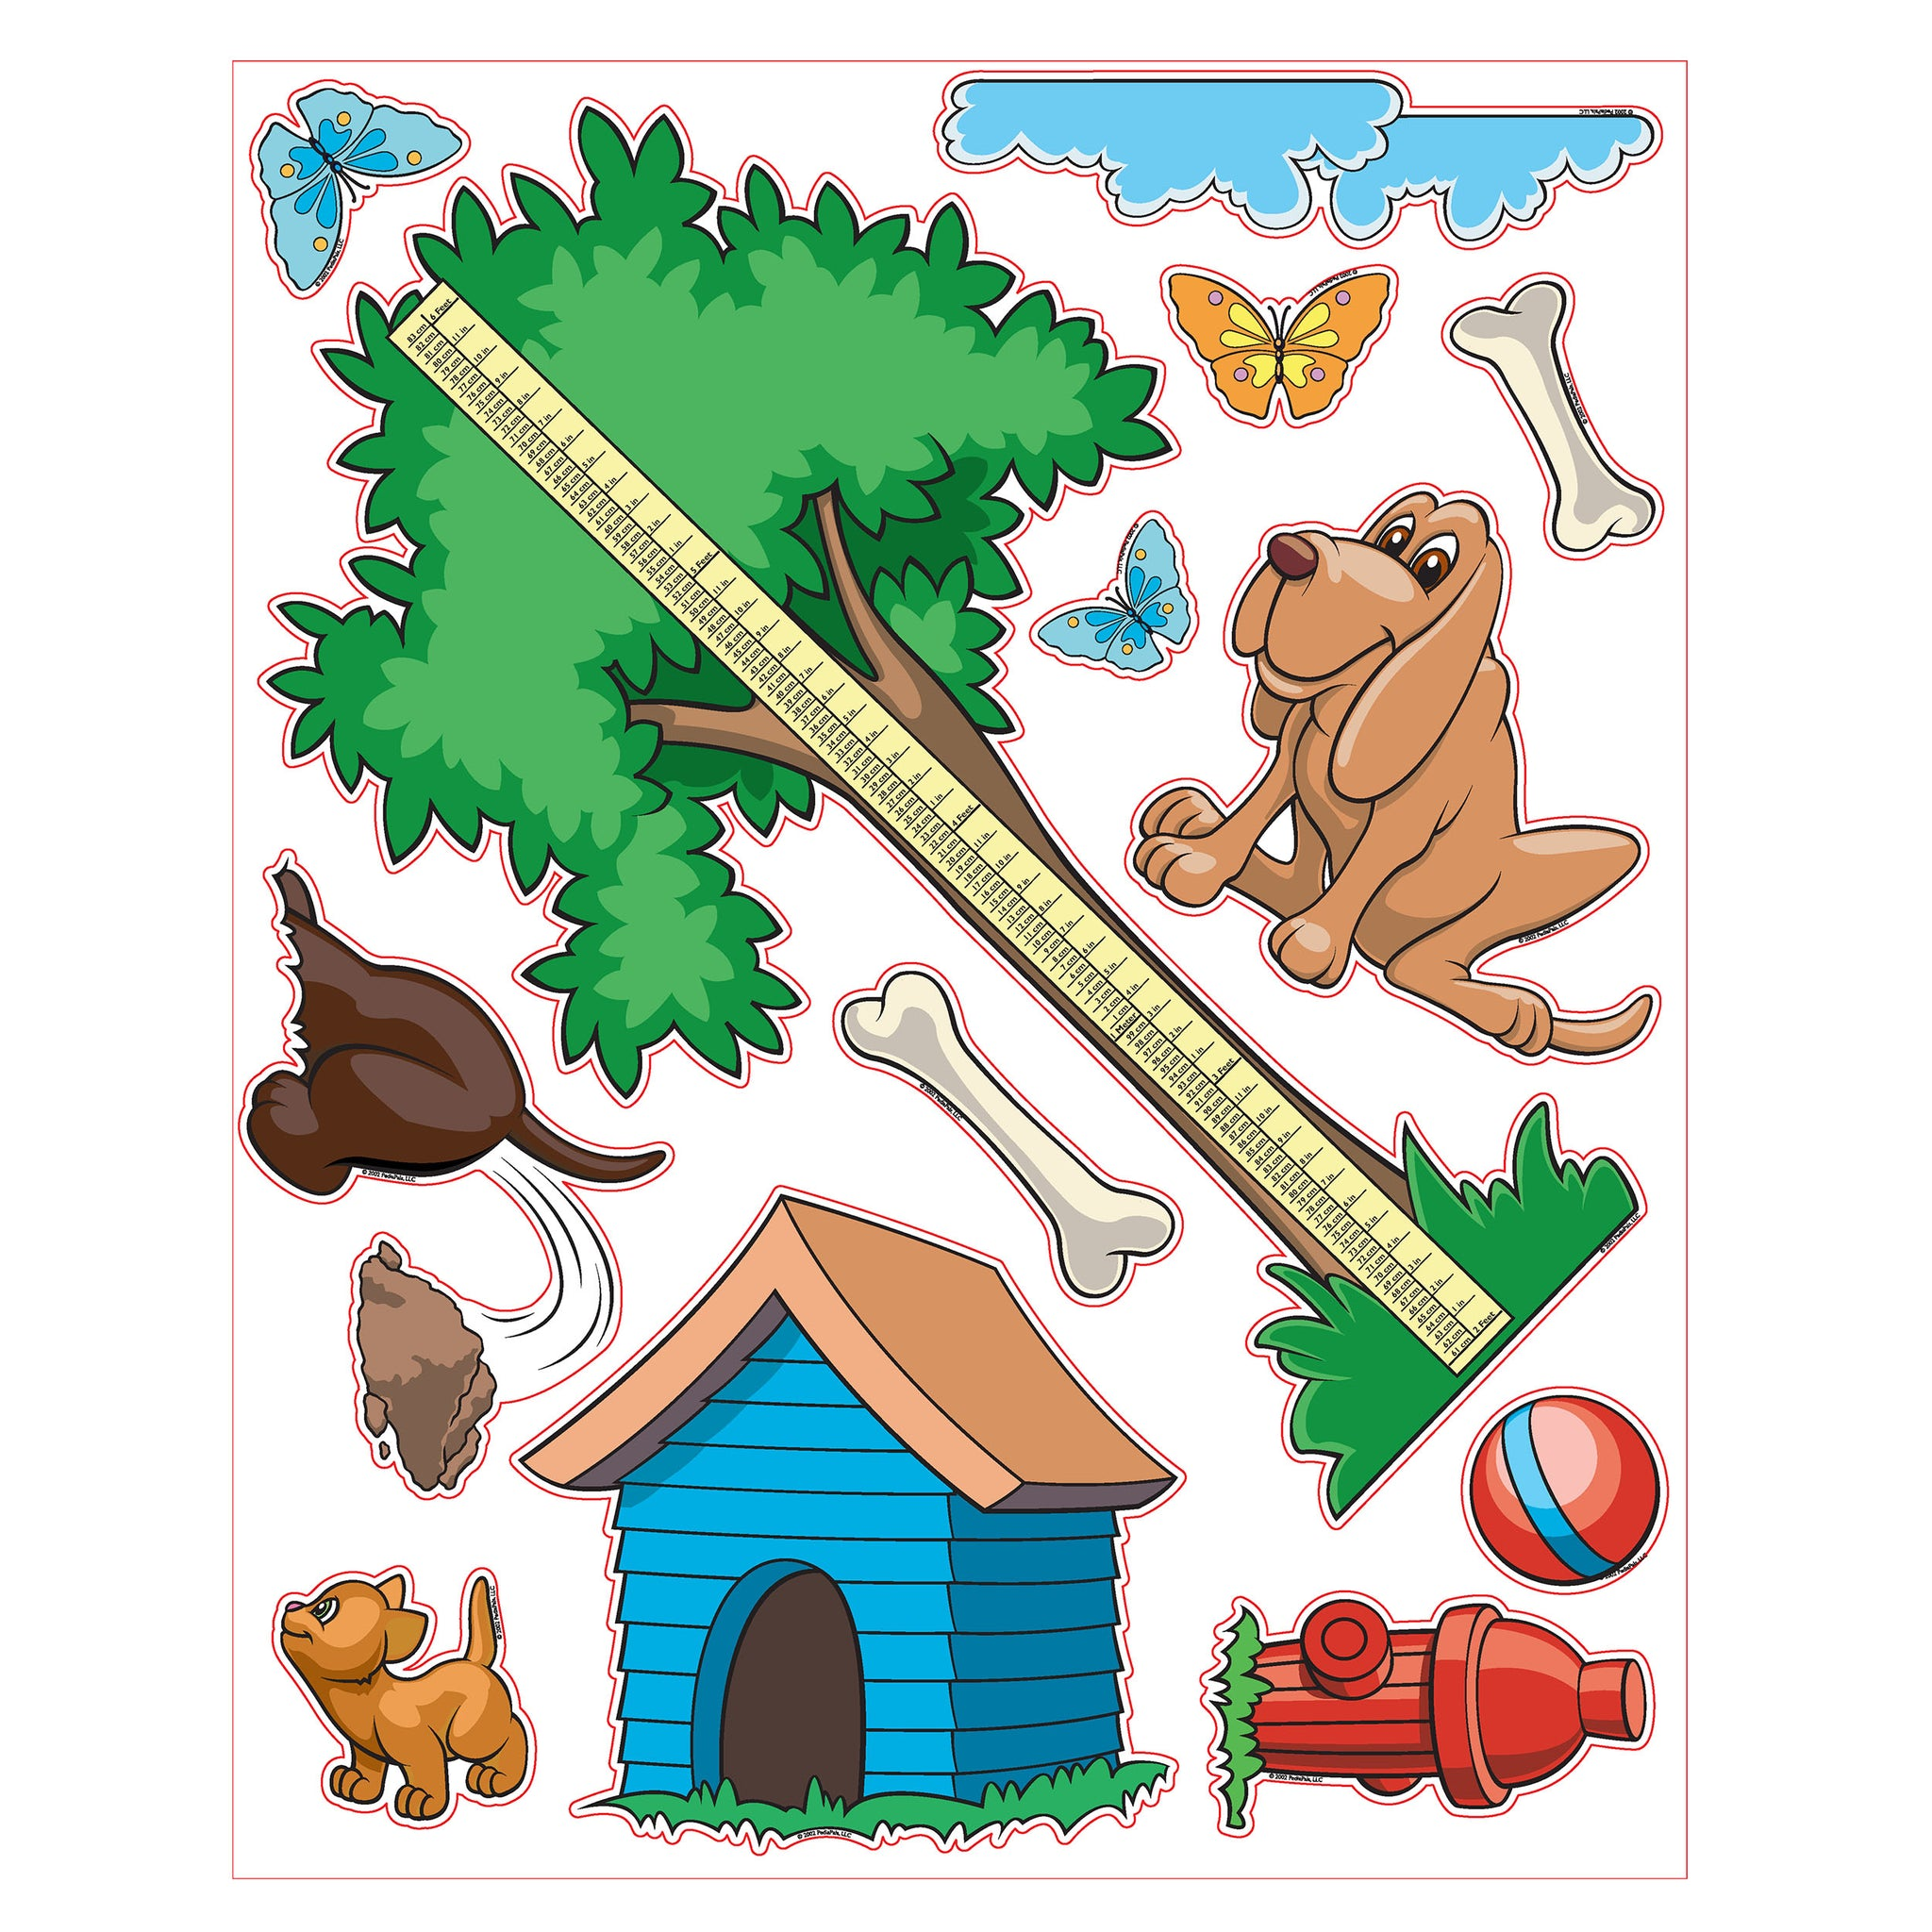 Pedia Pals Pediatric Puppy Theme Decal Kit